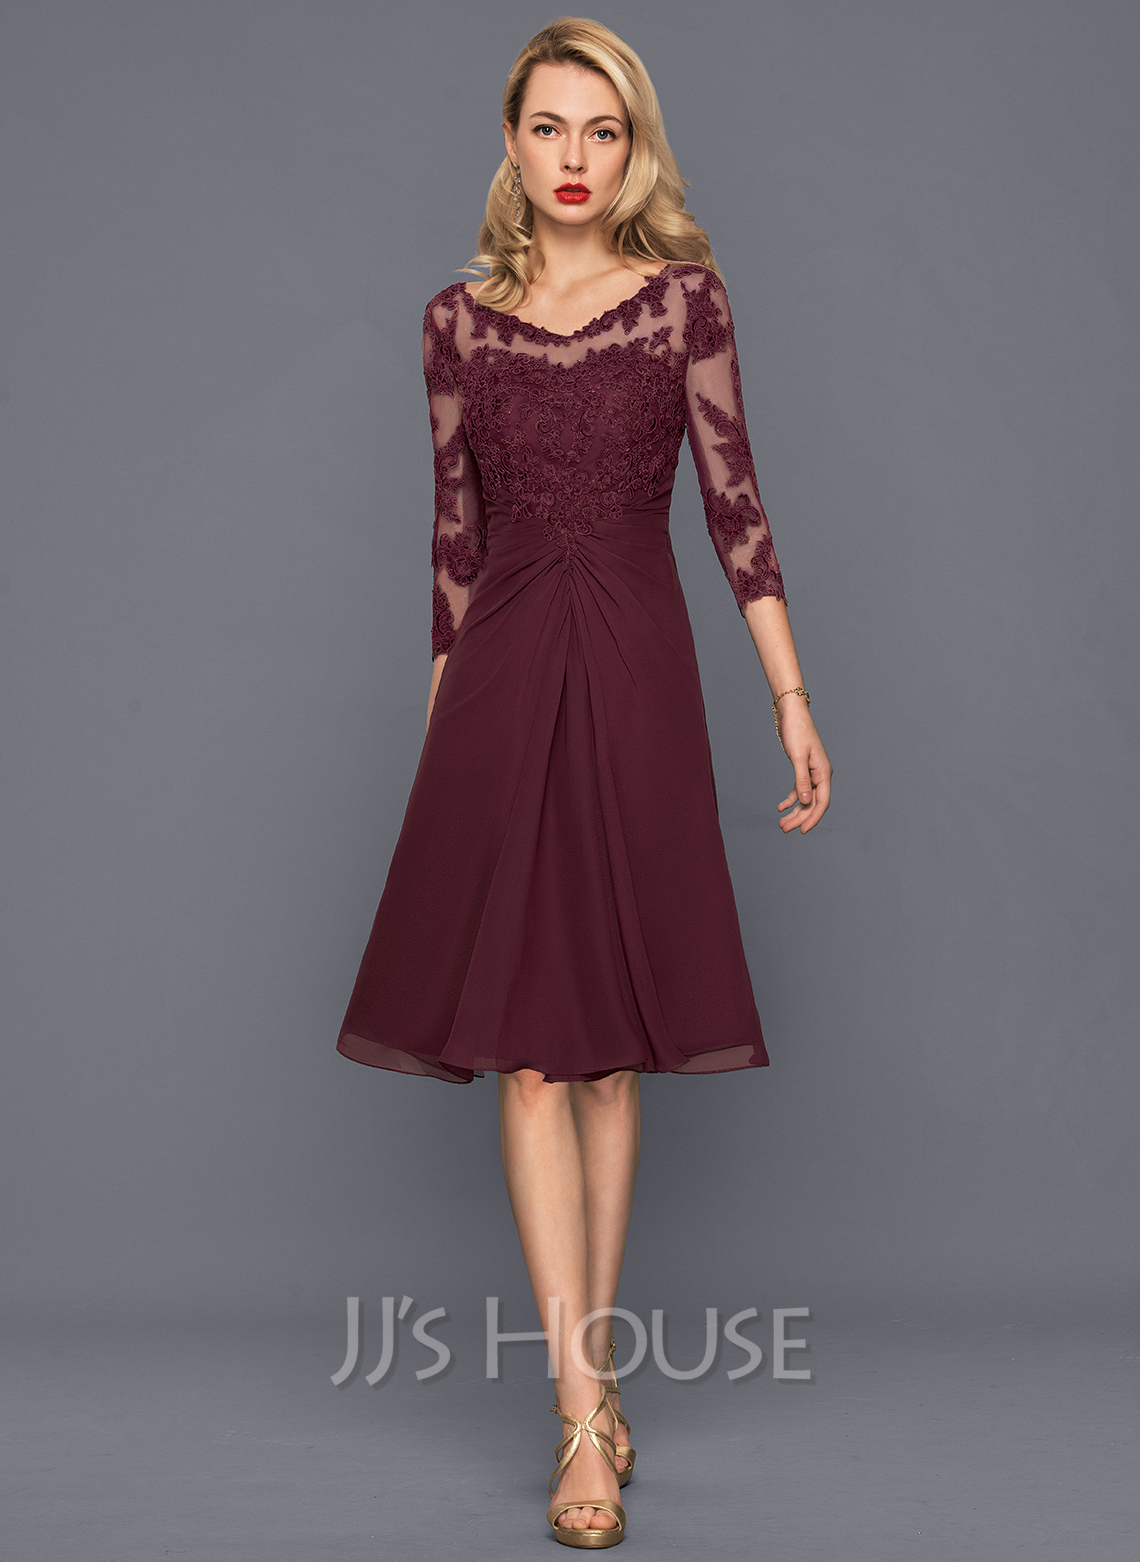 c1fc35f6a54f A-Line Princess V-neck Knee-Length Chiffon Cocktail Dress With Ruffle.  Loading zoom